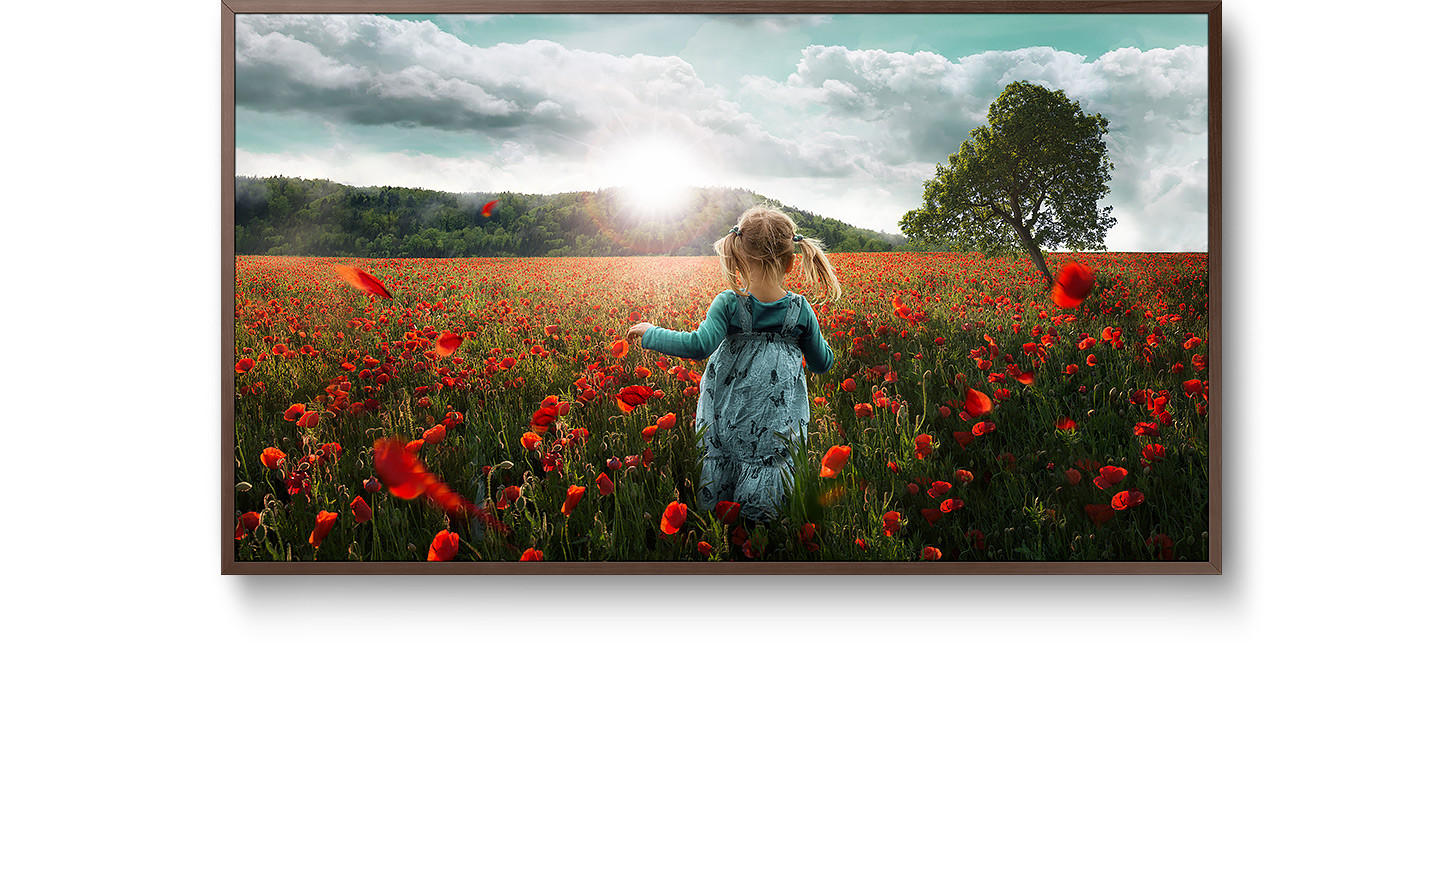 Samsung the frame tv 4k uhd resolution hdr smart tv samsung us samsungs the frame smart tv shows a girl running towards the sun in jeuxipadfo Images